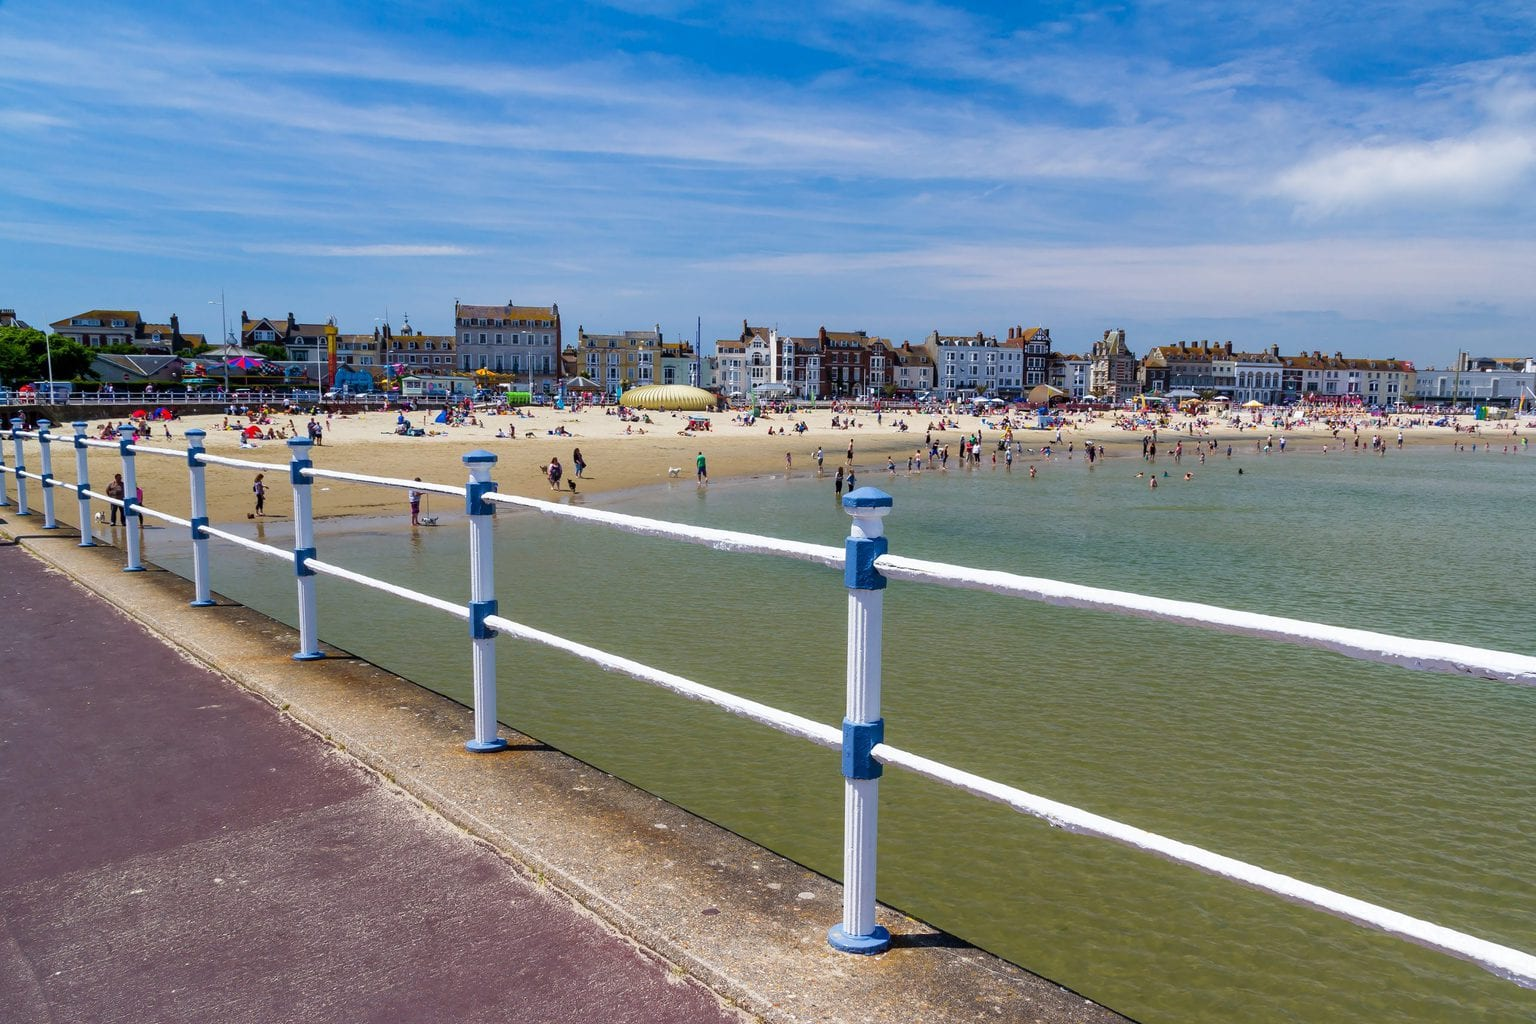 Weymouth is one of the most popular seaside towns in dorset